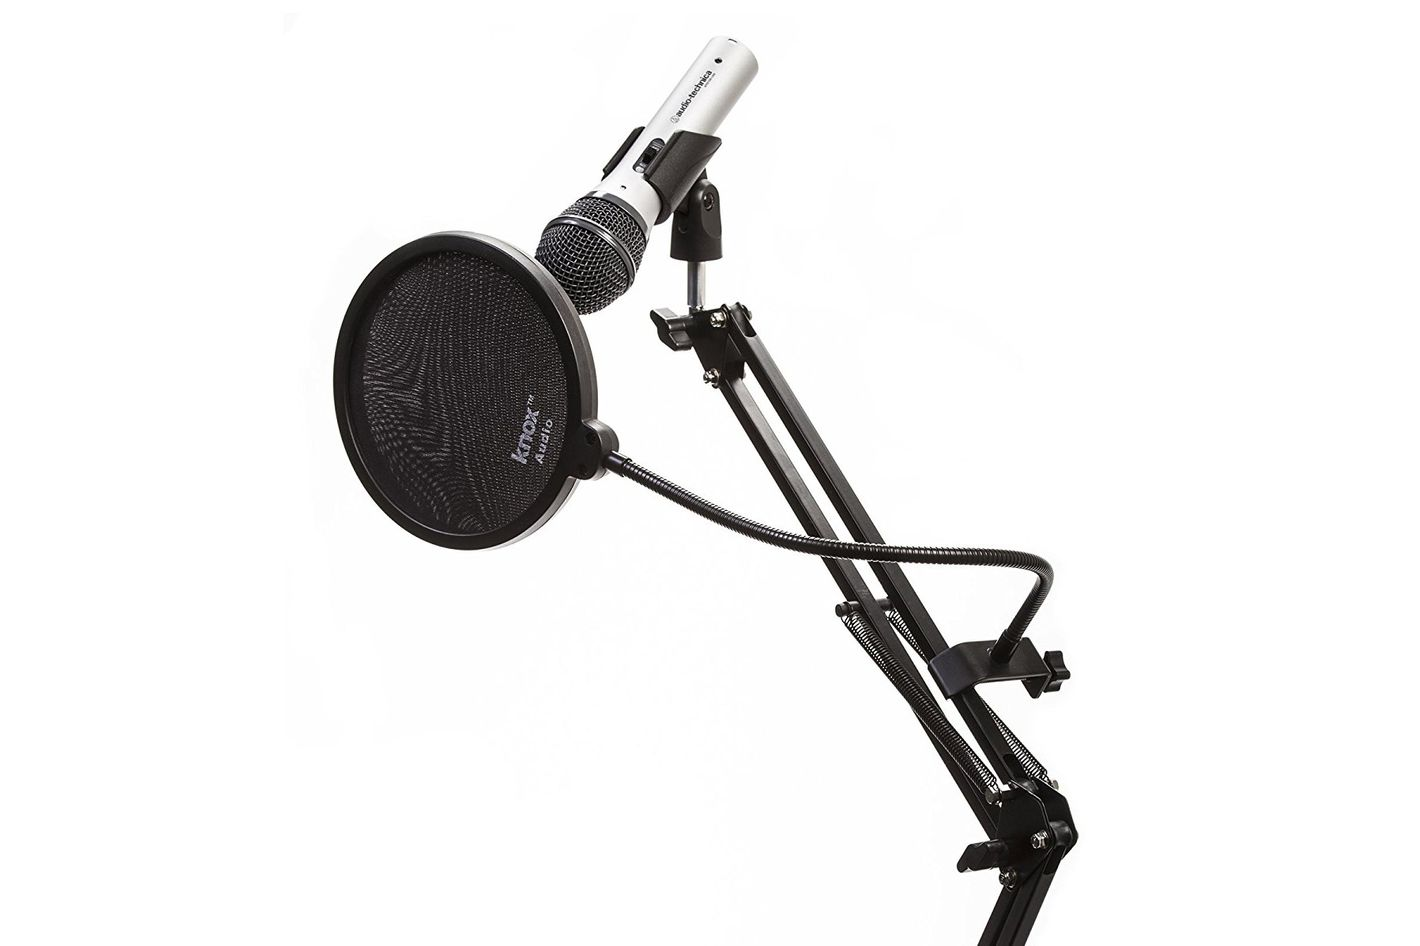 Audio Technica Microphone With Knox Desktop Boom Arm Mic Stand & Pop Filter